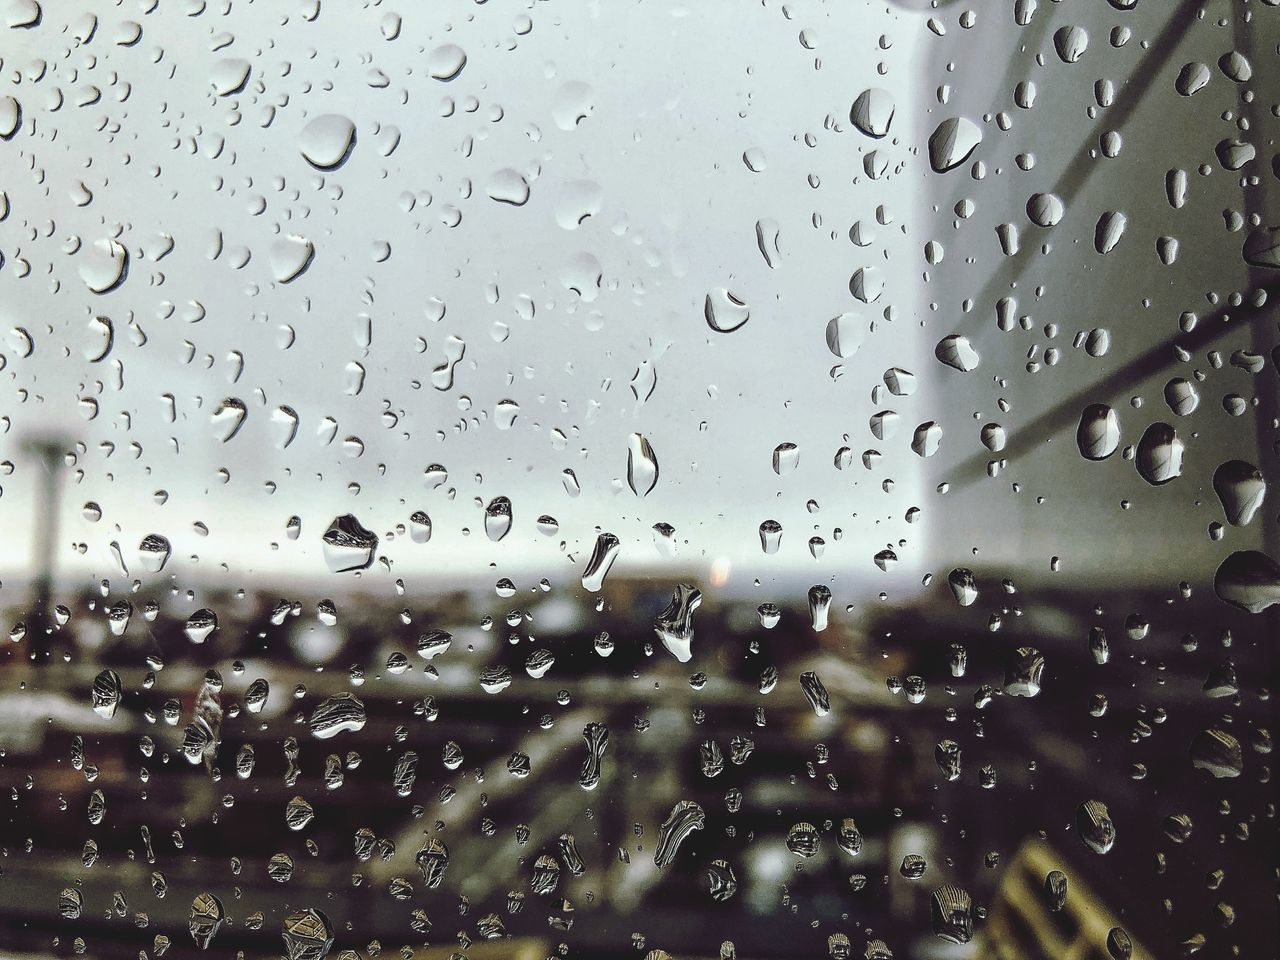 drop, wet, water, glass - material, rain, transparent, window, full frame, no people, indoors, sky, raindrop, close-up, rainy season, backgrounds, nature, focus on foreground, day, glass